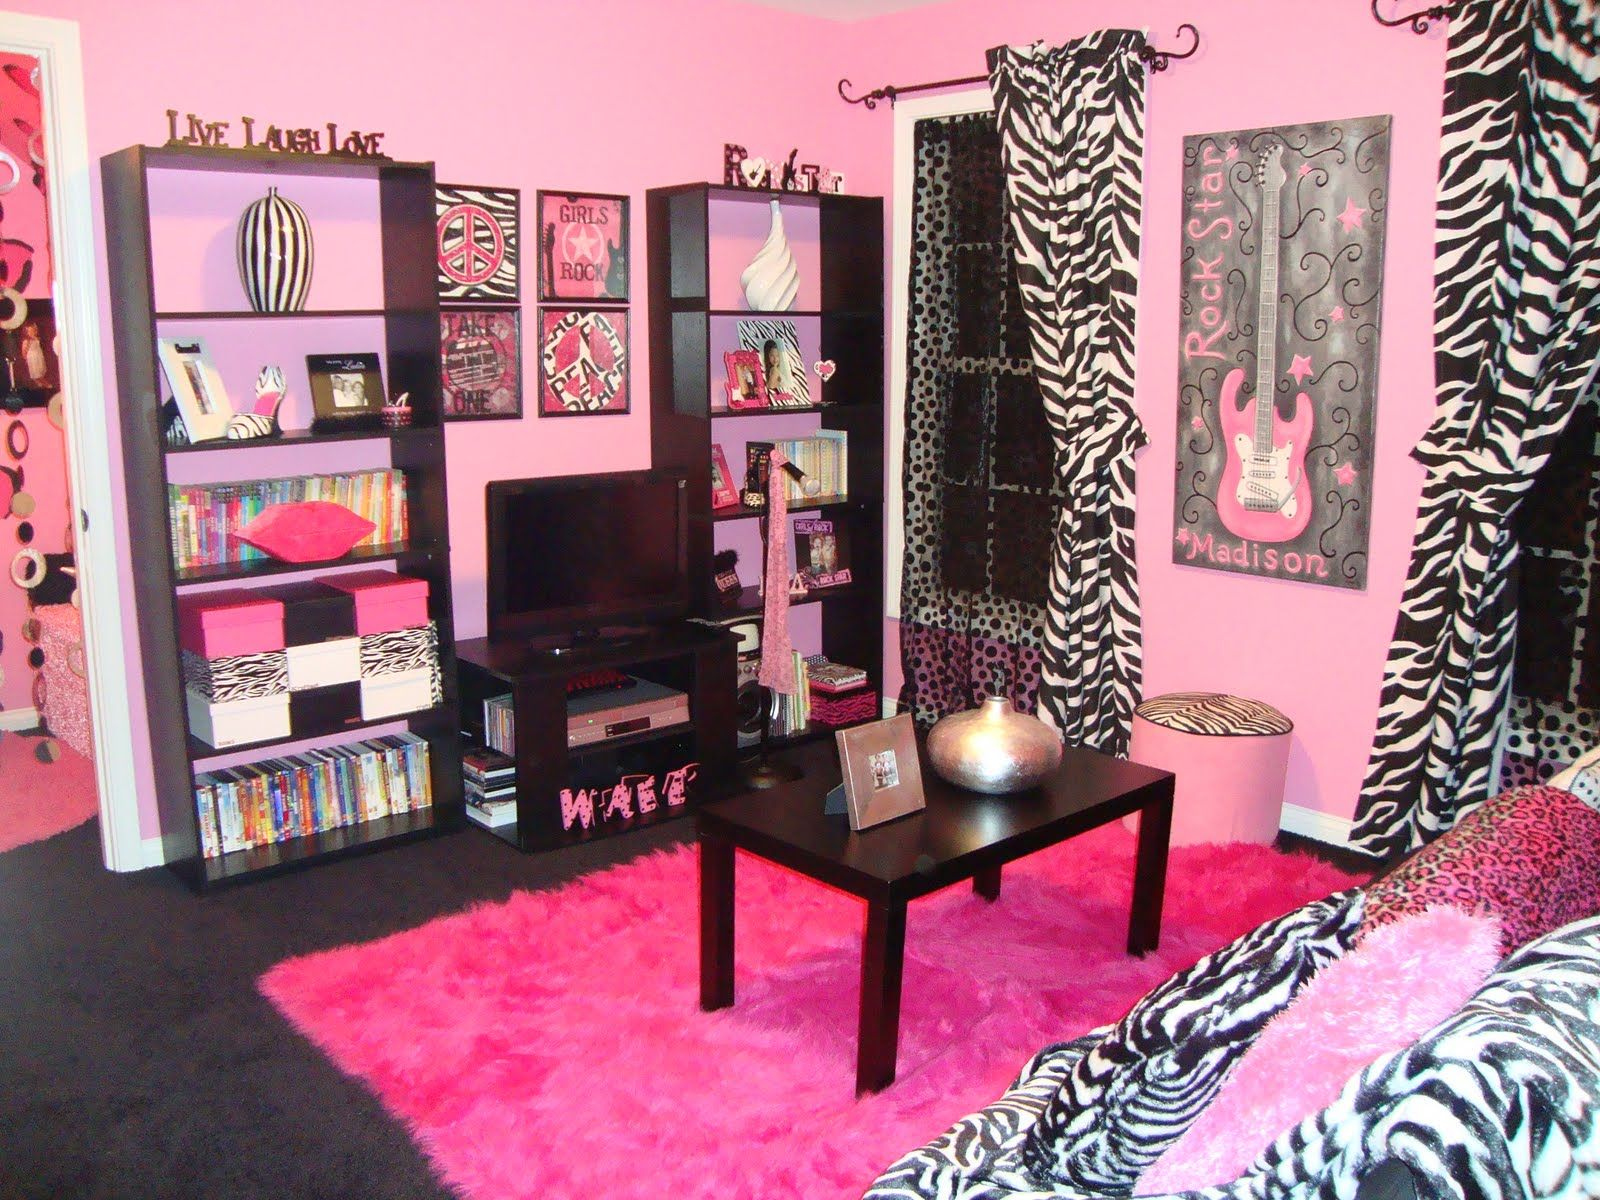 Fashionable Teen Hangout Lounge. 17 Best ideas about Pink Zebra Bedrooms on Pinterest   Zebra print